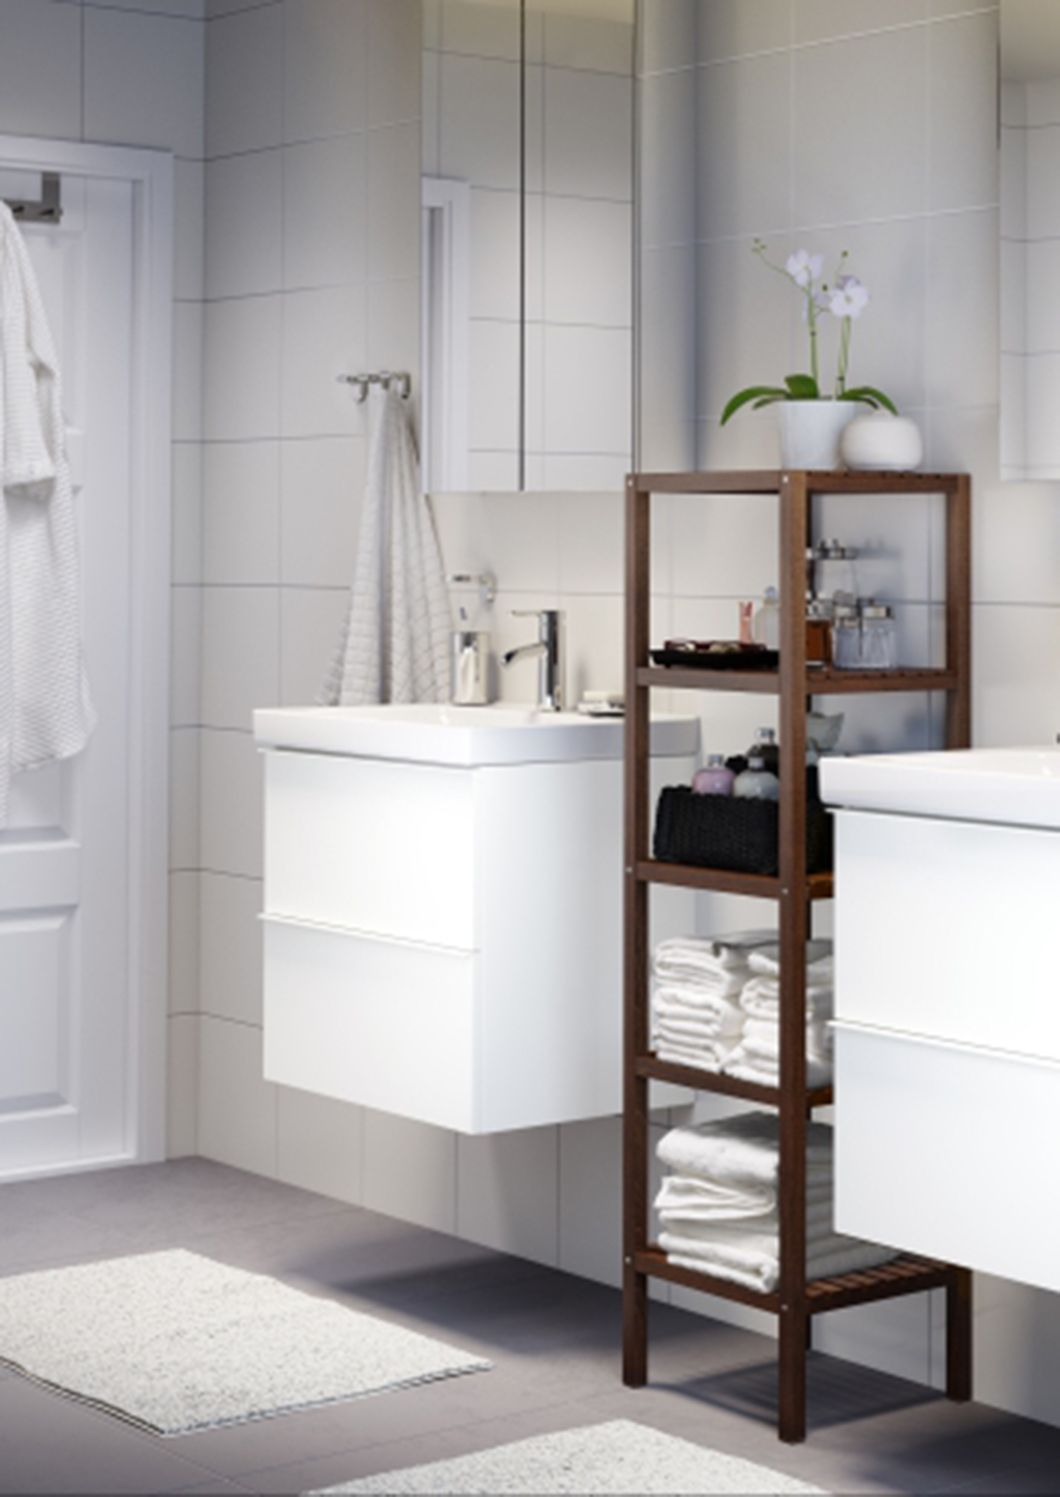 Clic Bathroom Ideas | Neutral Colors And Clean Lines Create A Peaceful Bathroom